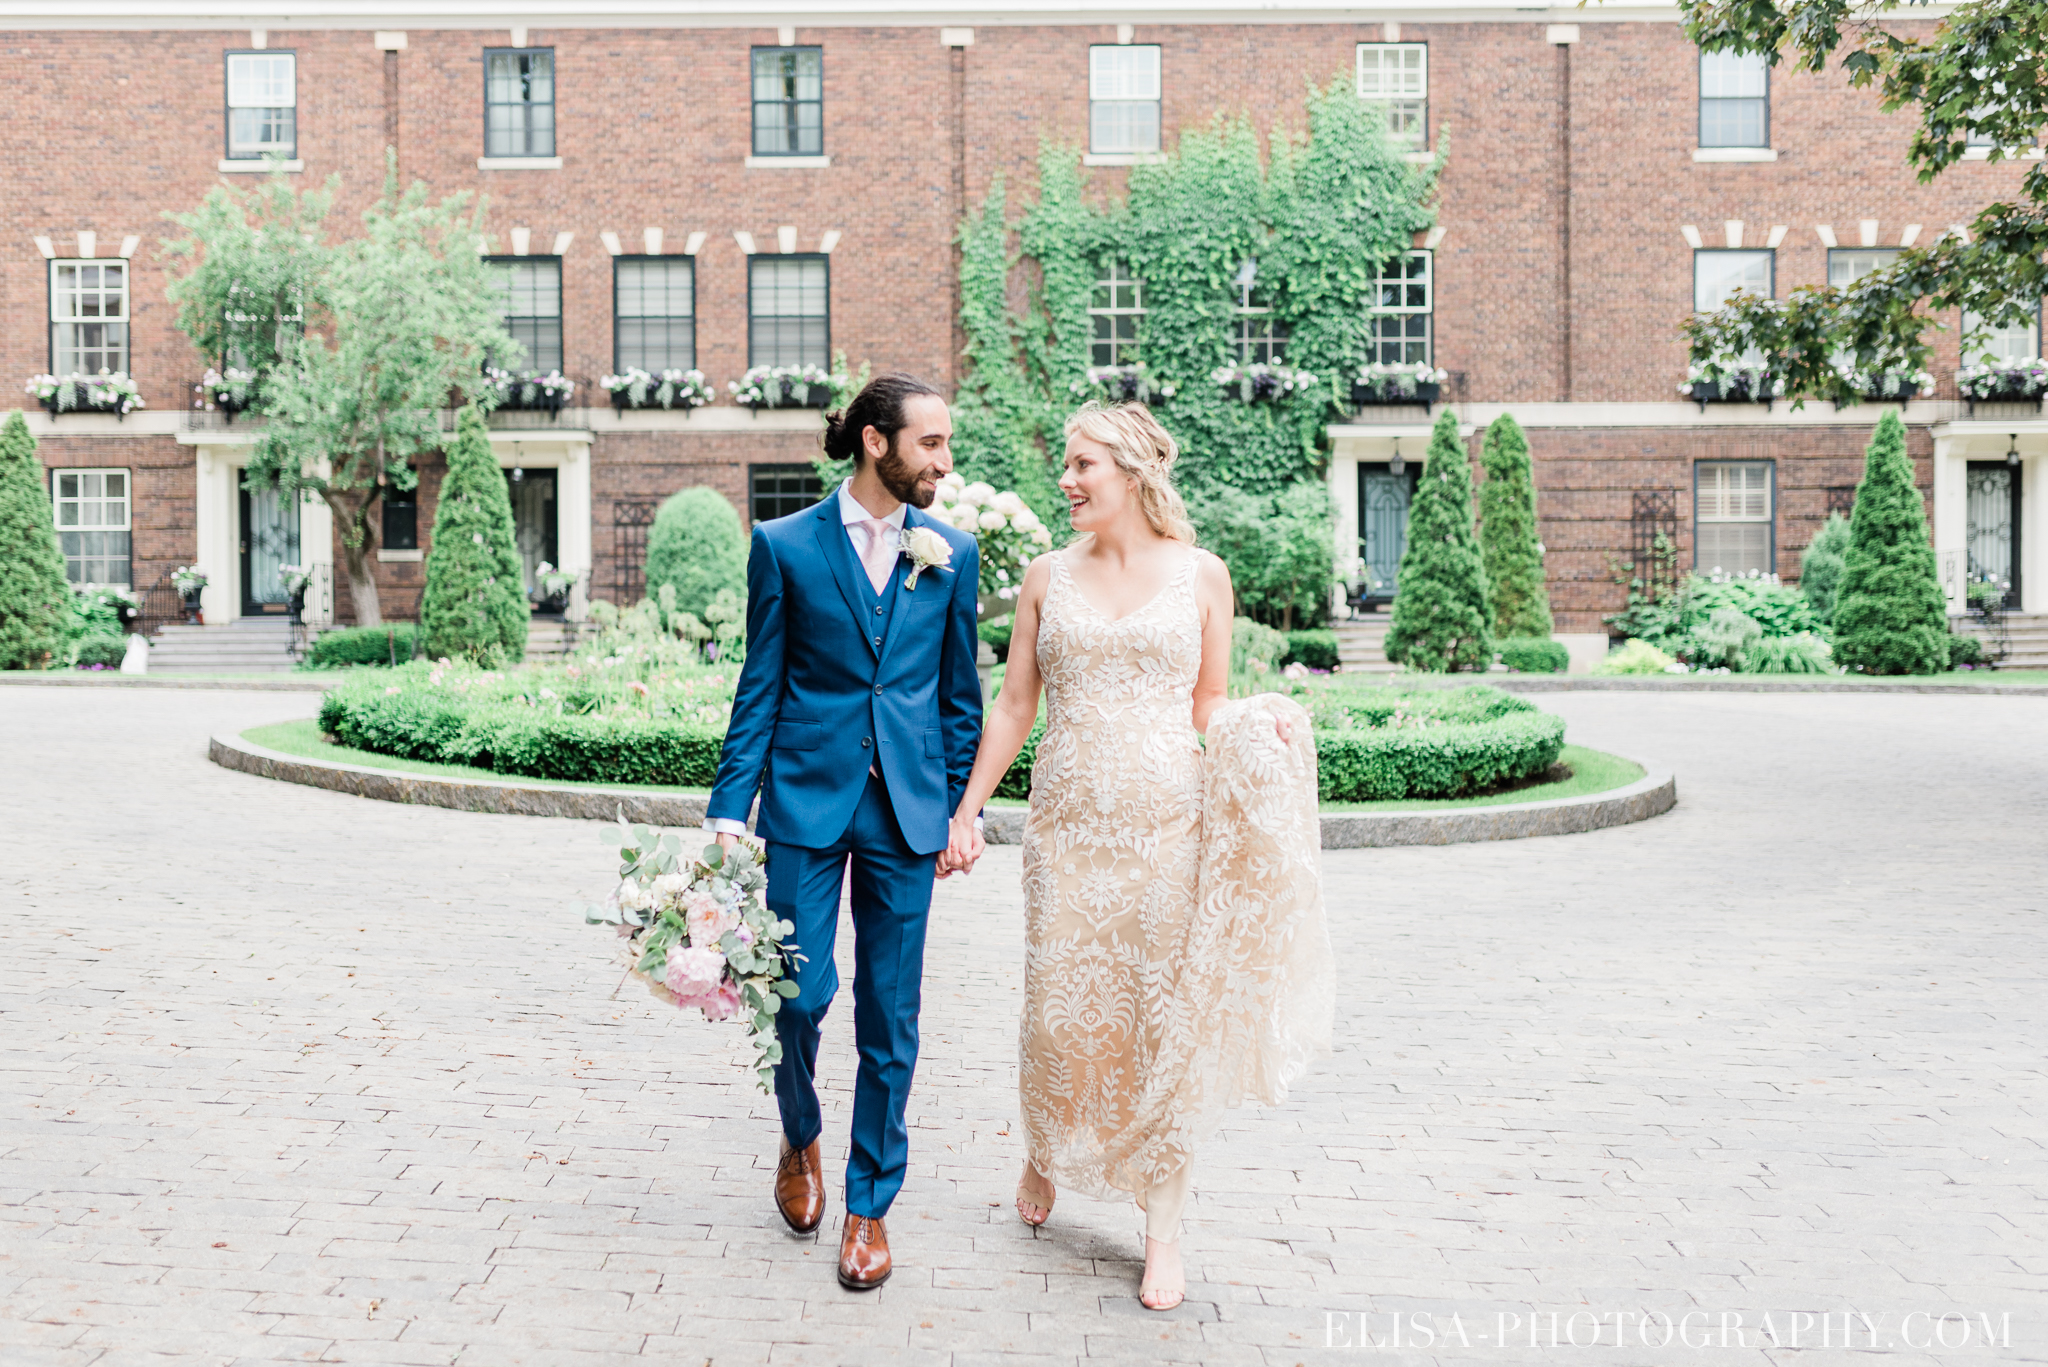 photo mariage downtown montreal urban wedding portrait elisa photographer 9093 - An elegant wedding under the marquee at the Forest and Stream Club in Montreal